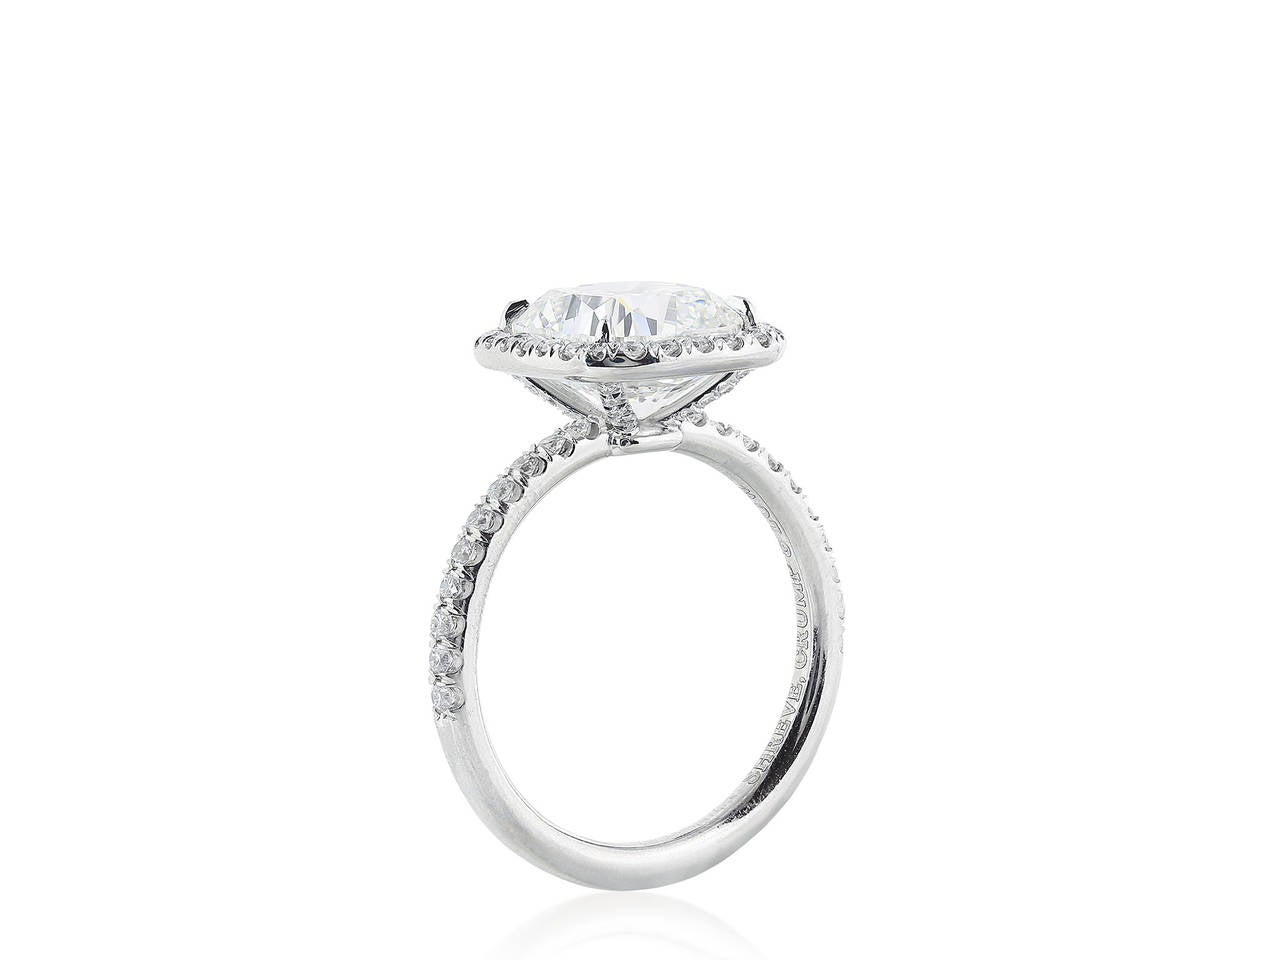 4 01 Carat Cushion Cut Diamond Platinum Ring For Sale at 1stdibs